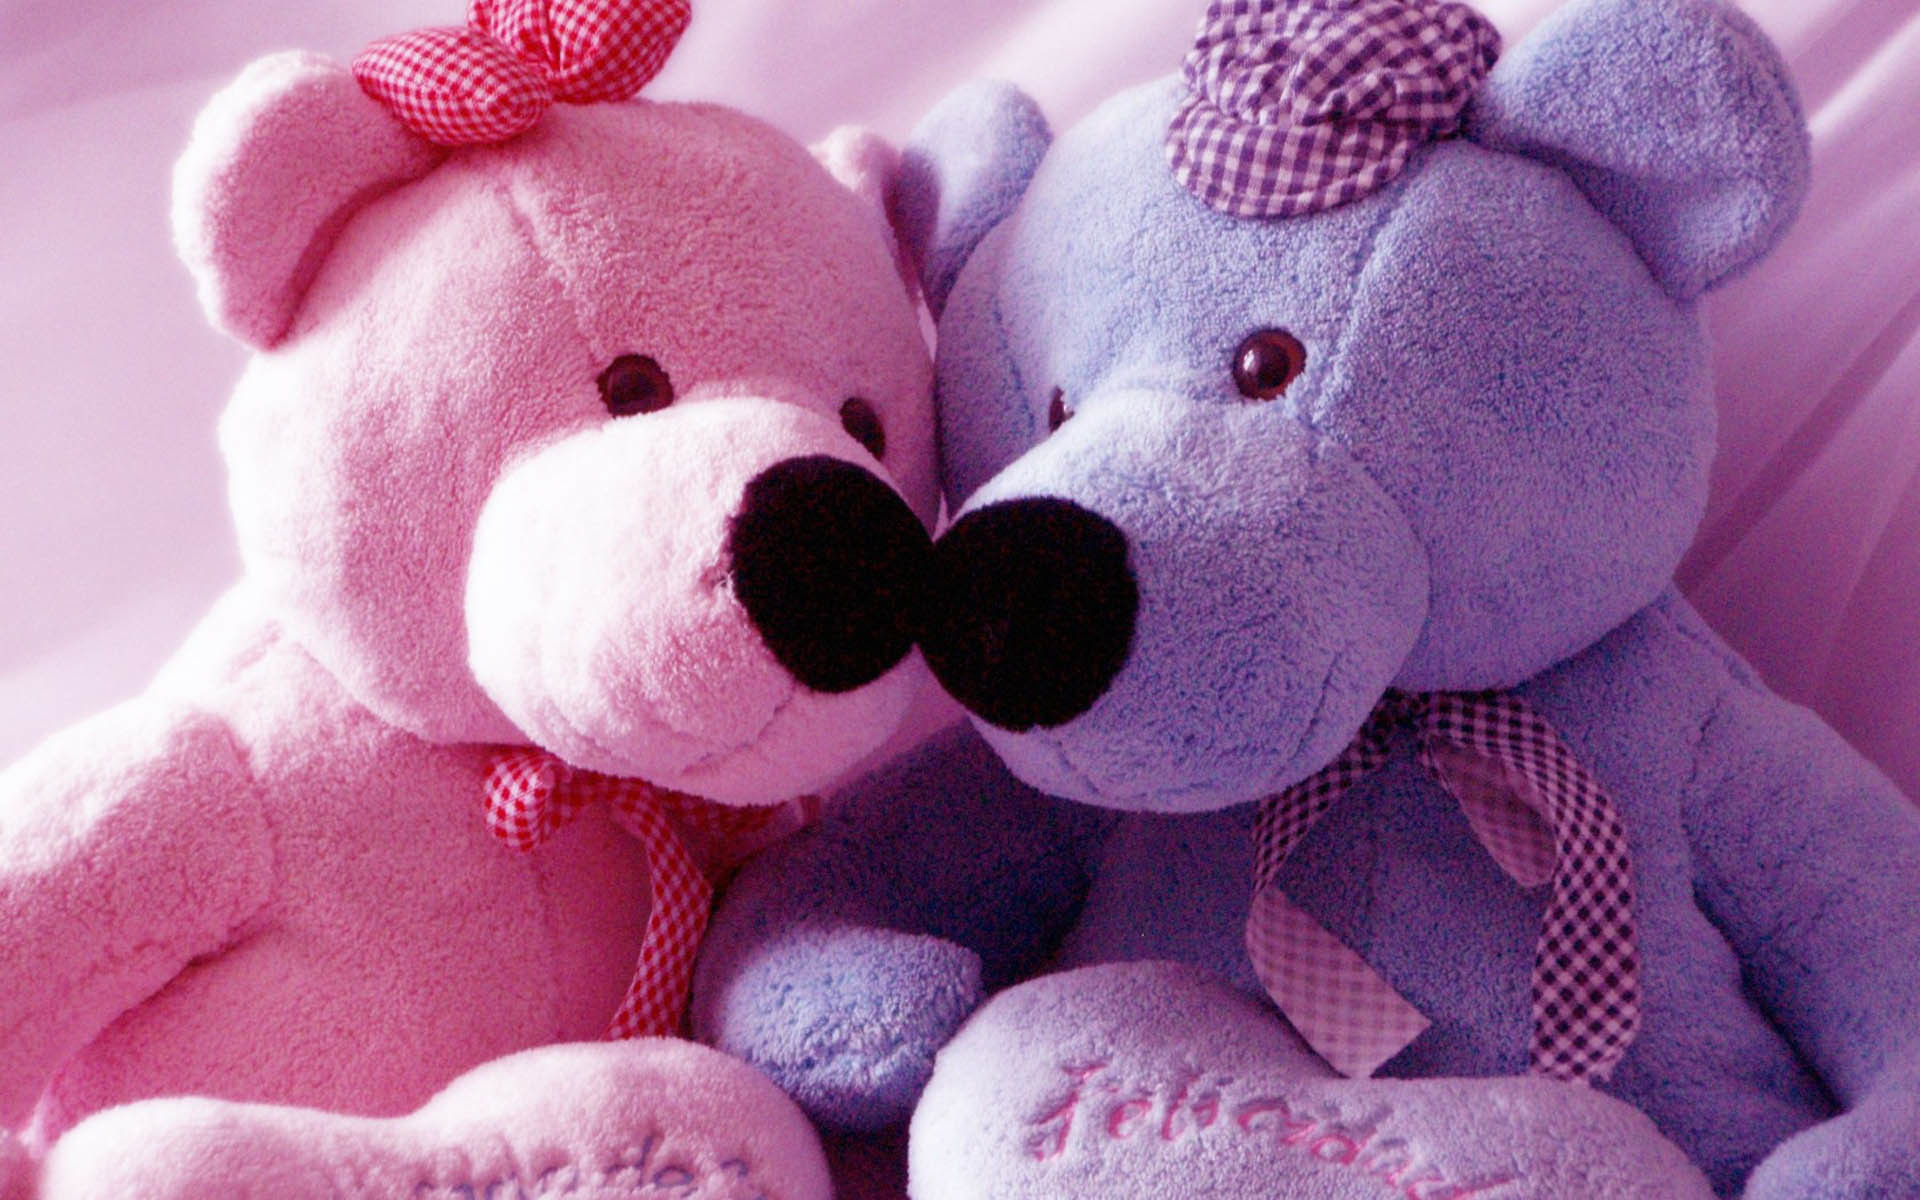 Cute teddy bear wallpaper 50 images 1920x1200 top cute teddy bear wallpaper for happy teddy day teddy bear picture wallpapers wallpapers izmirmasajfo